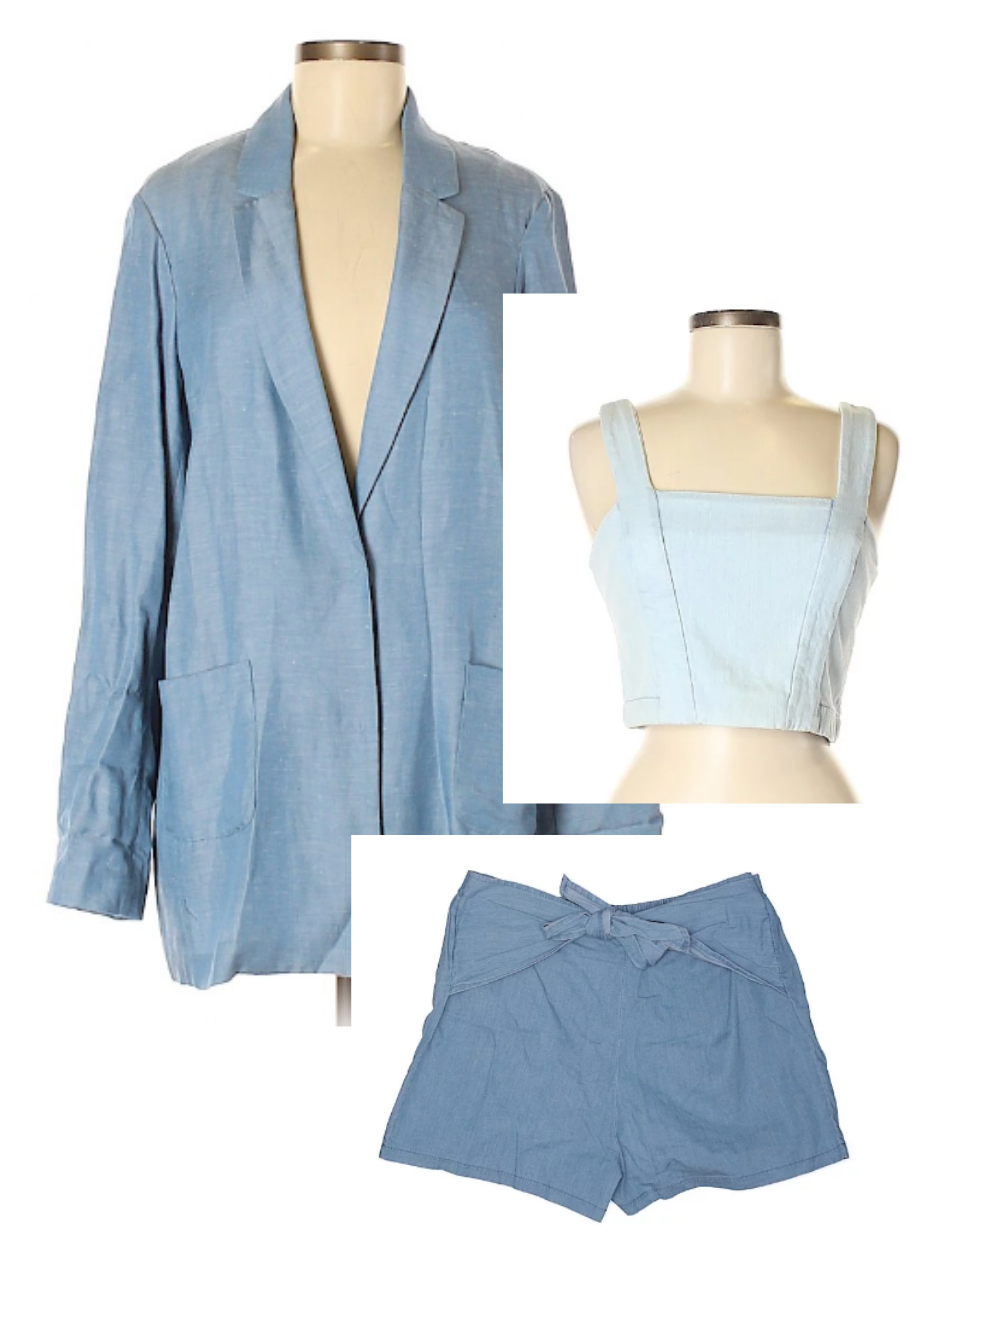 Light blue, playful shorts power suit for fourth of July